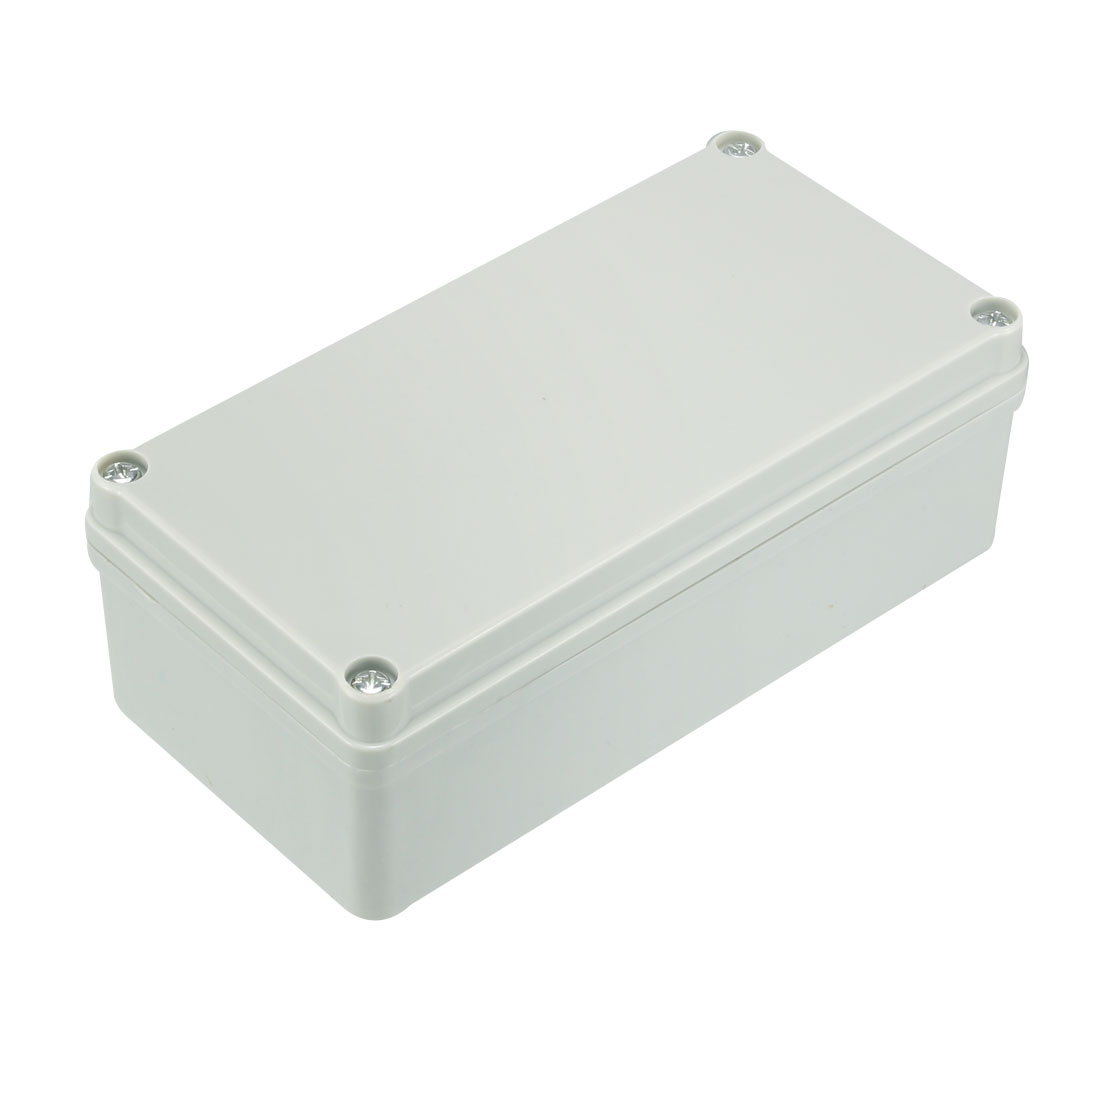 80 x 160 x 55mm Electronic Plastic DIY Junction Box Enclosure Case Gray